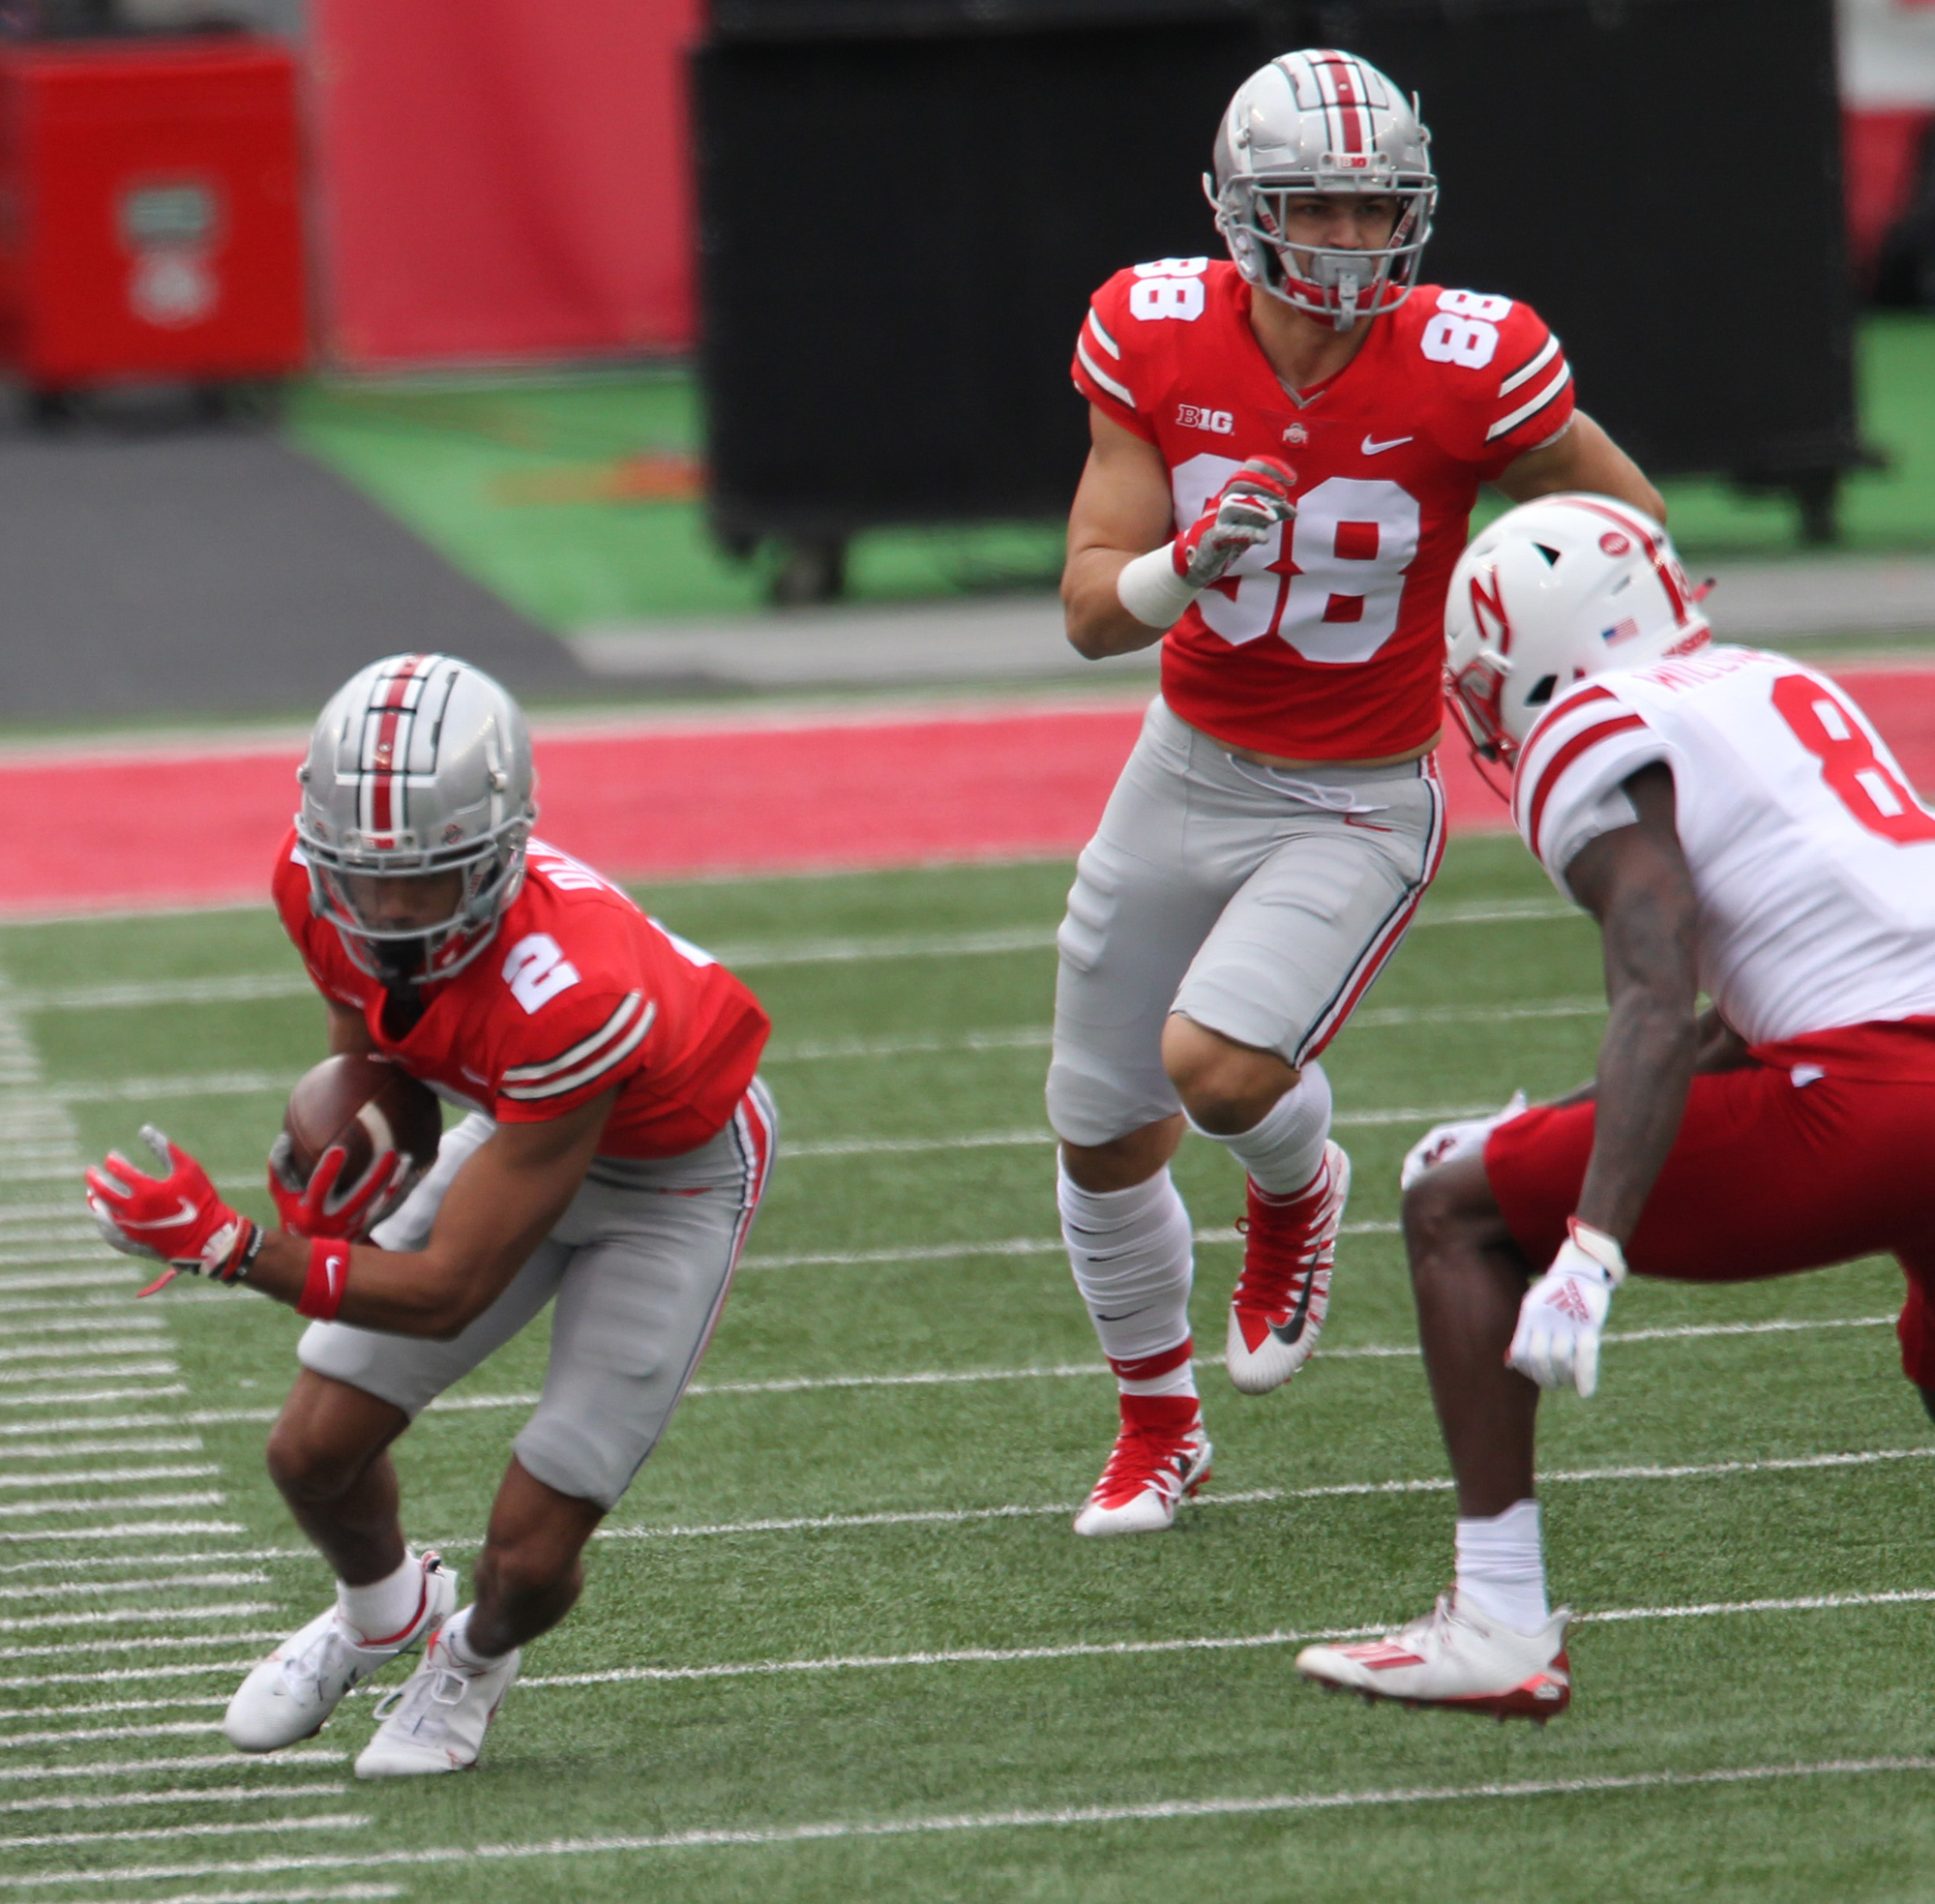 Ohio State Football S Chris Olave Knocked Out Of Nebraska Game But Ryan Day Held No Ill Will For Huskers Targeting Penalties Cleveland Com